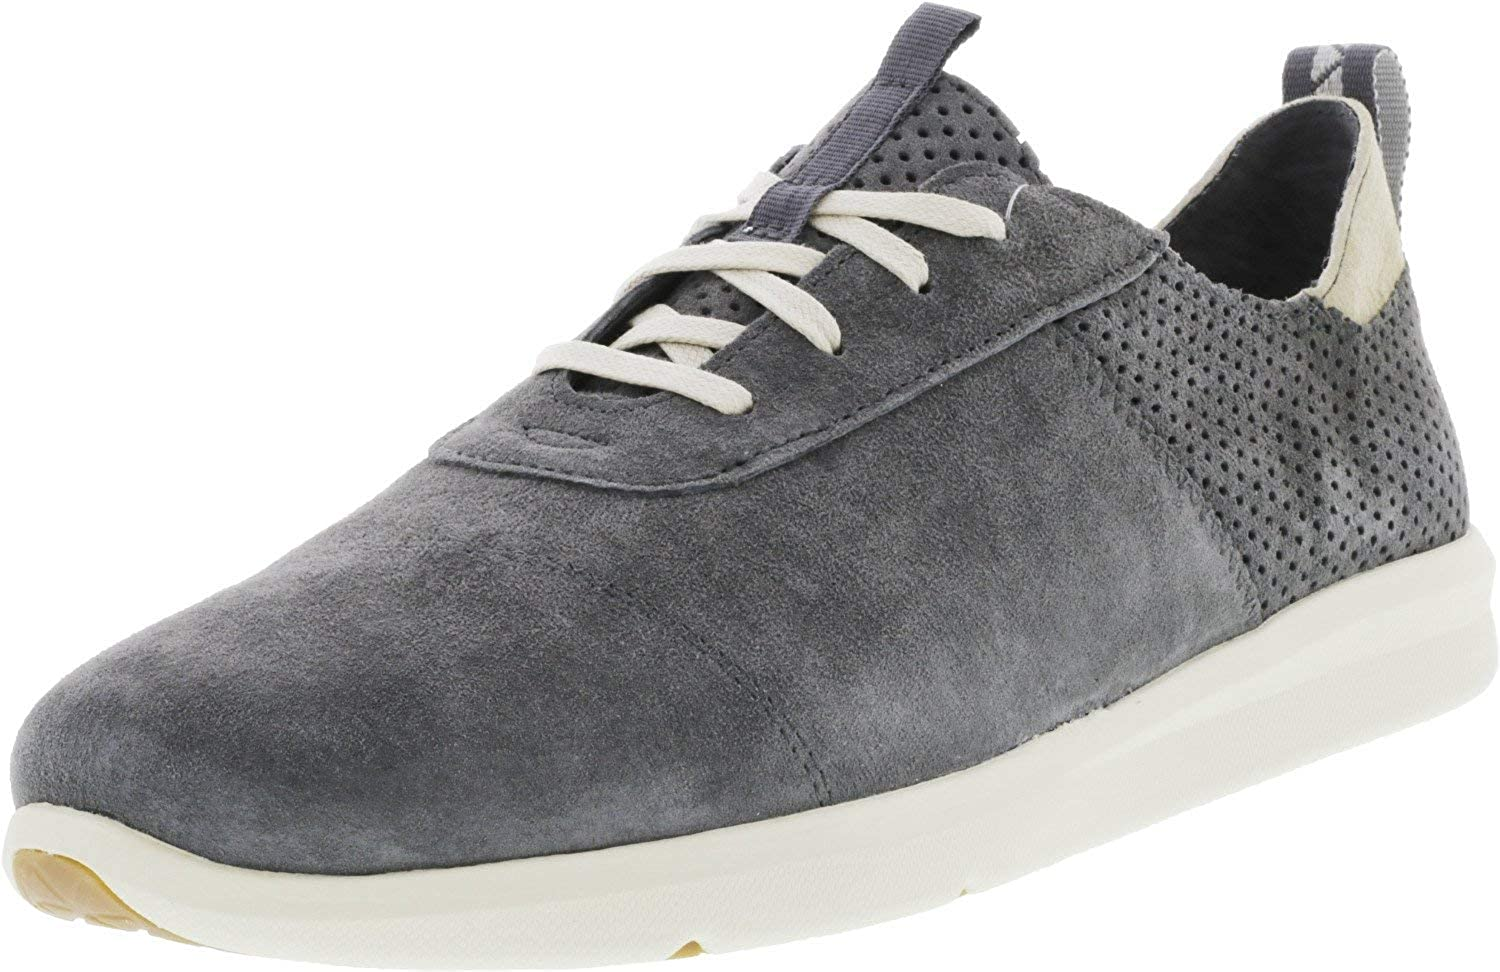 Toms Men's Cabrillo Suede Shade Ankle